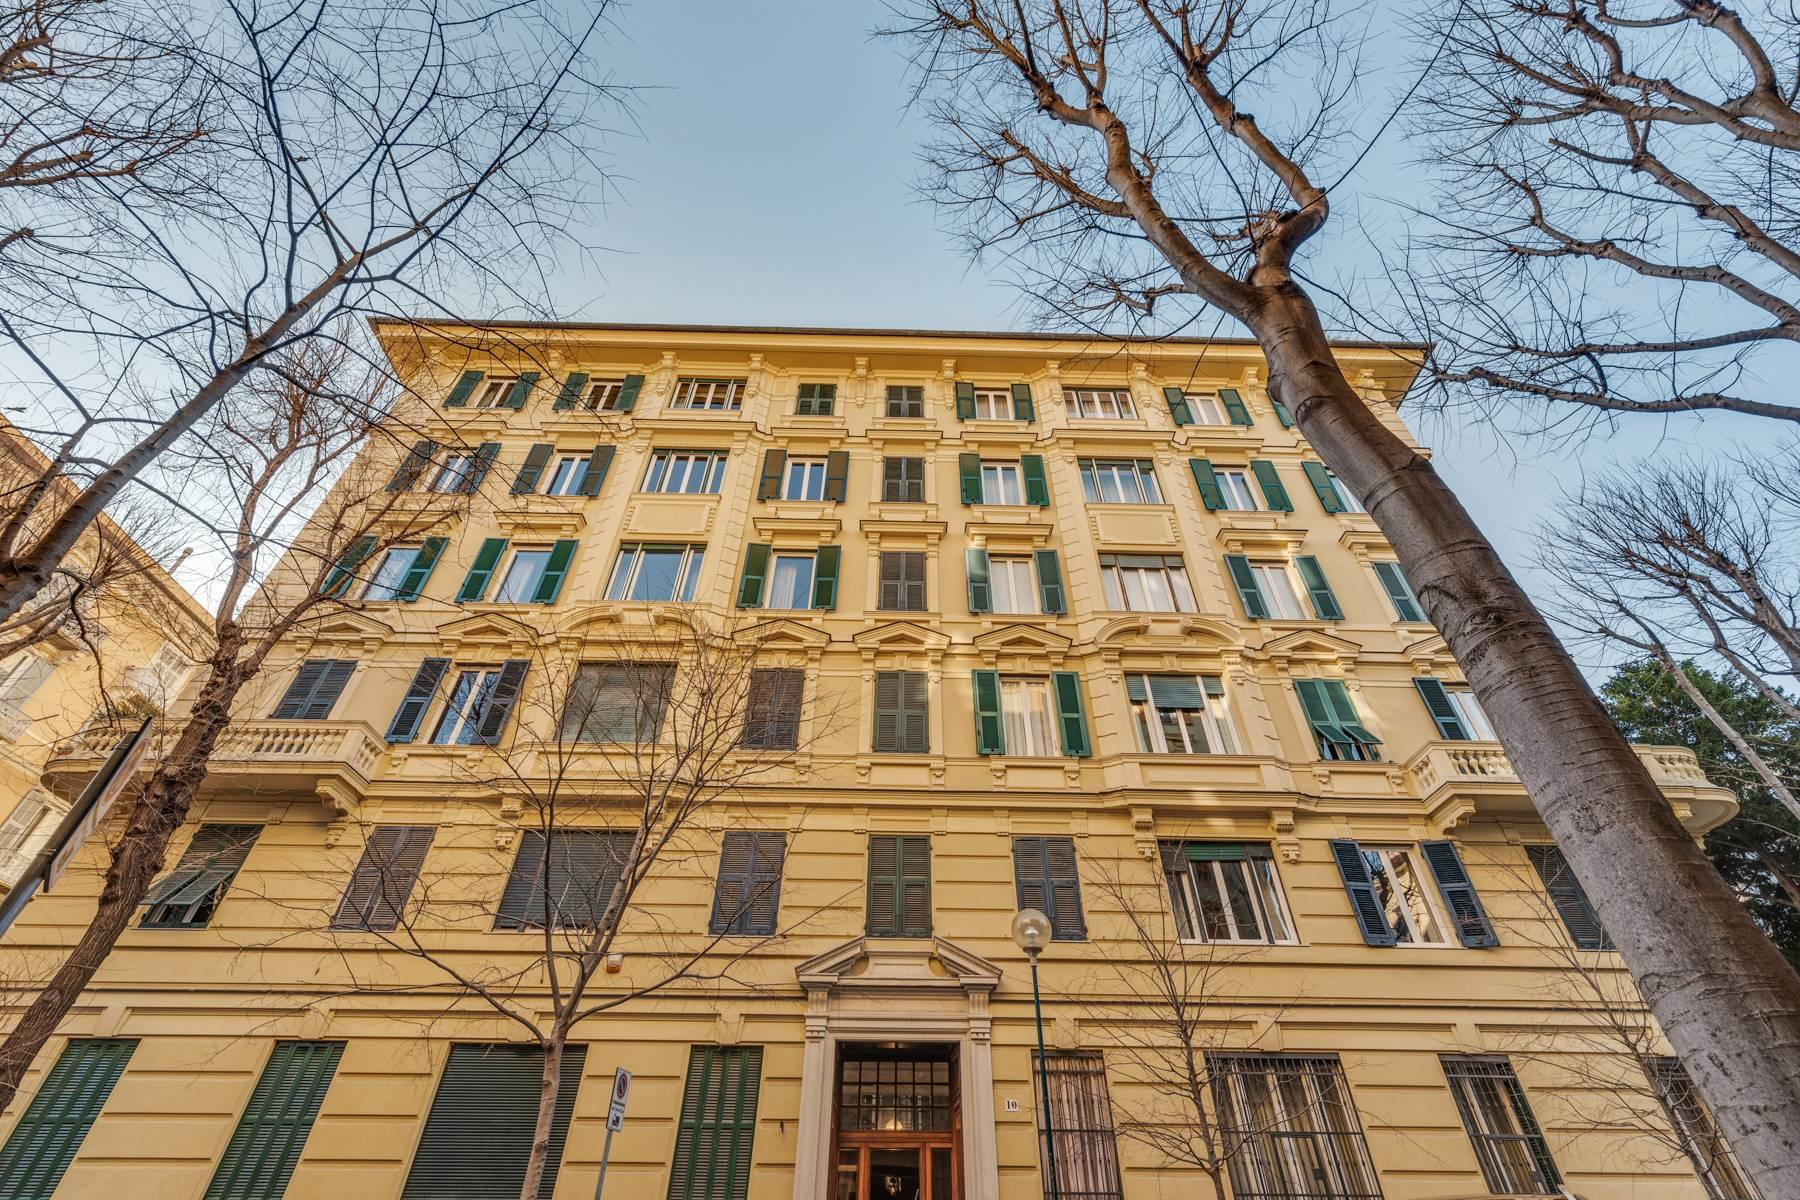 Prestigious 275 sqm apartment inside a period building in Carignano - 1